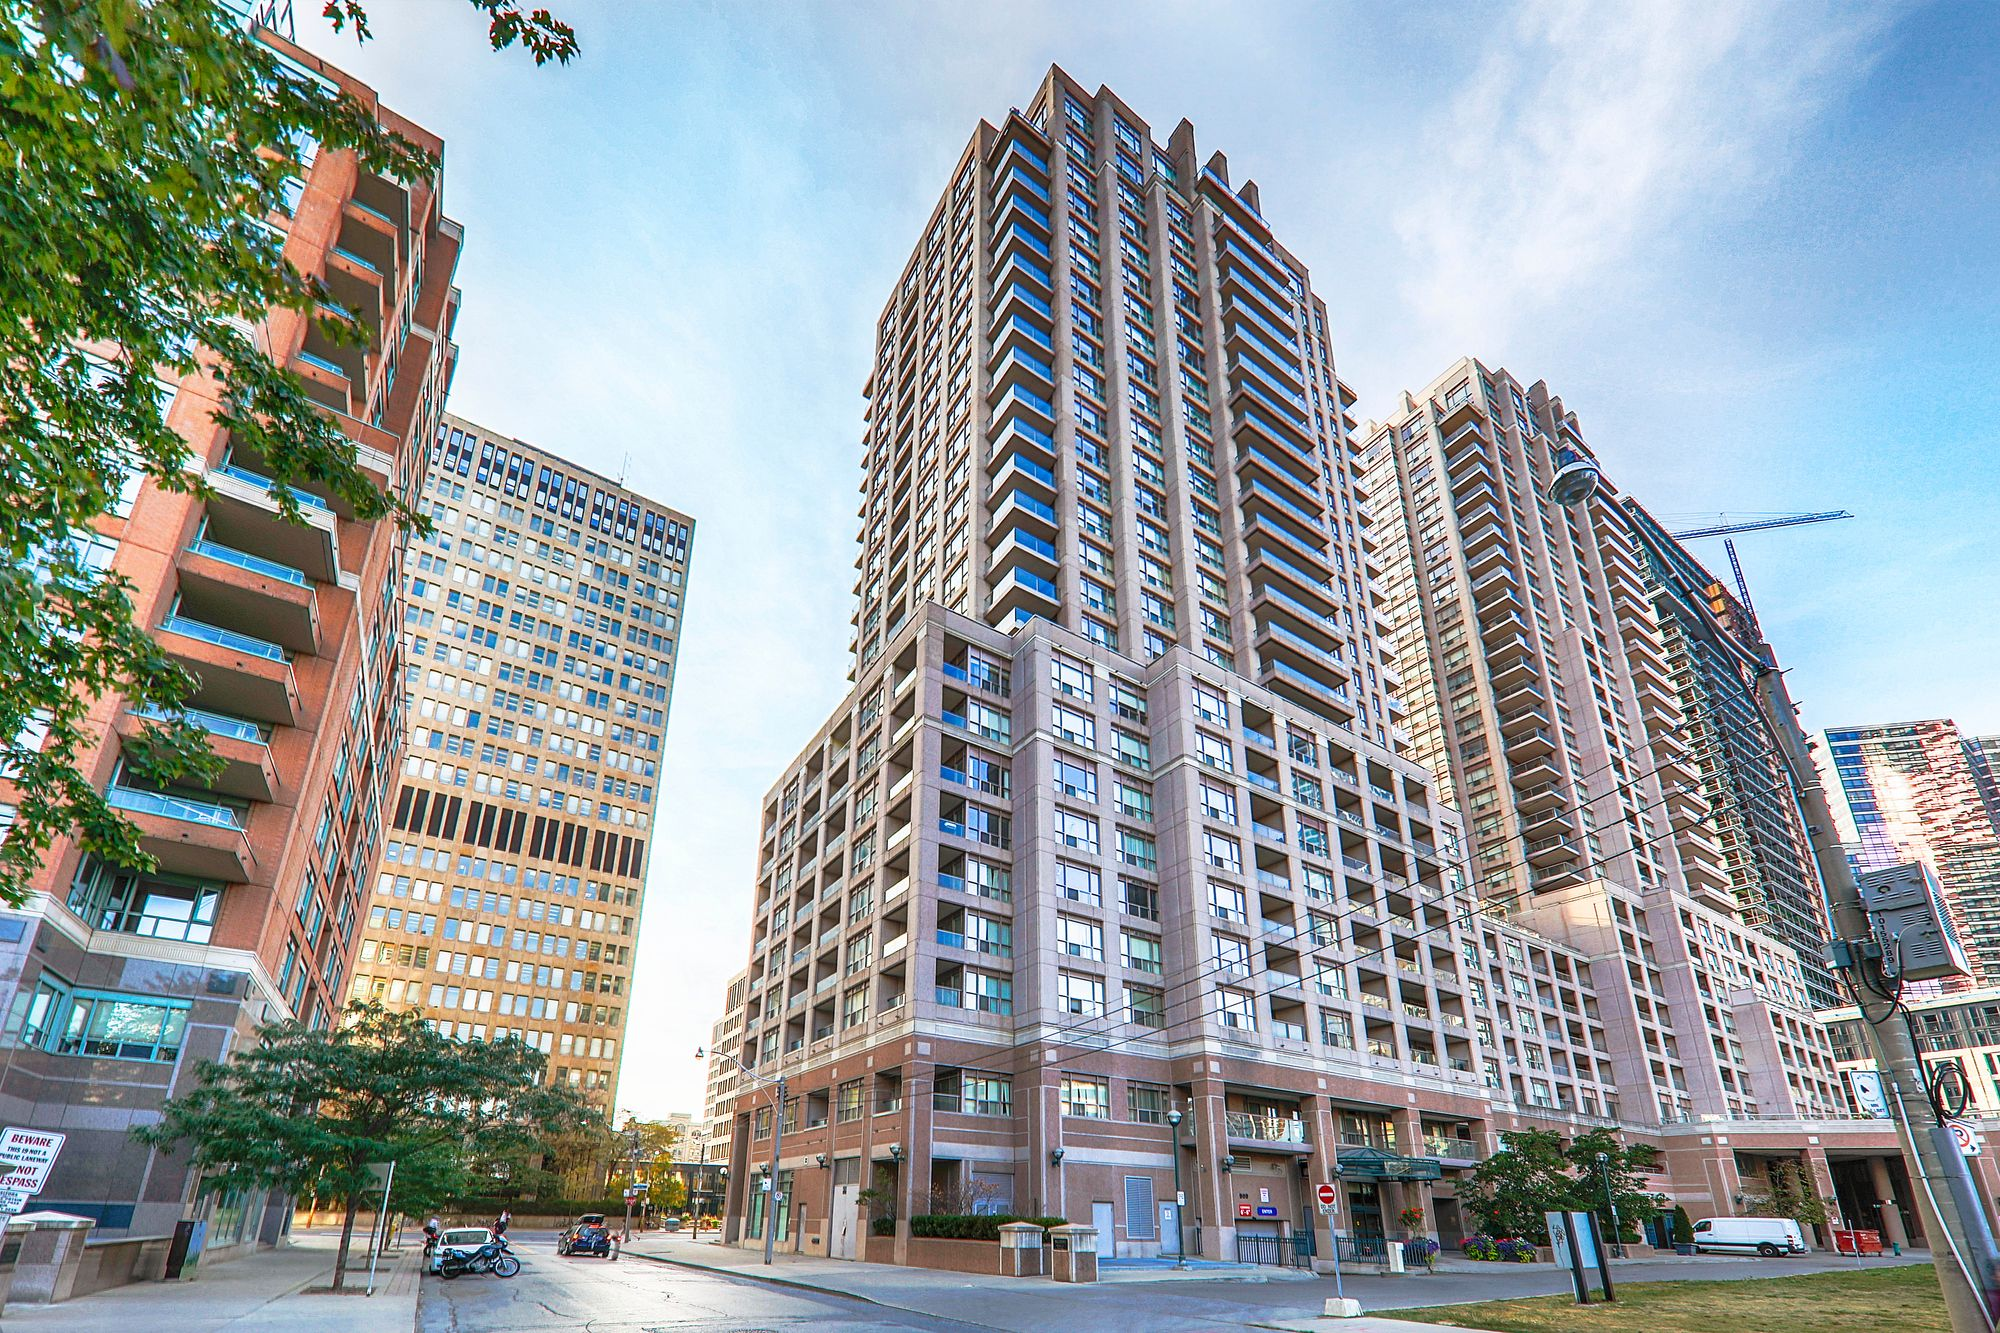 The Allegro at 909 Bay St. This condo is located in  Downtown, Toronto - image #1 of 5 by Strata.ca